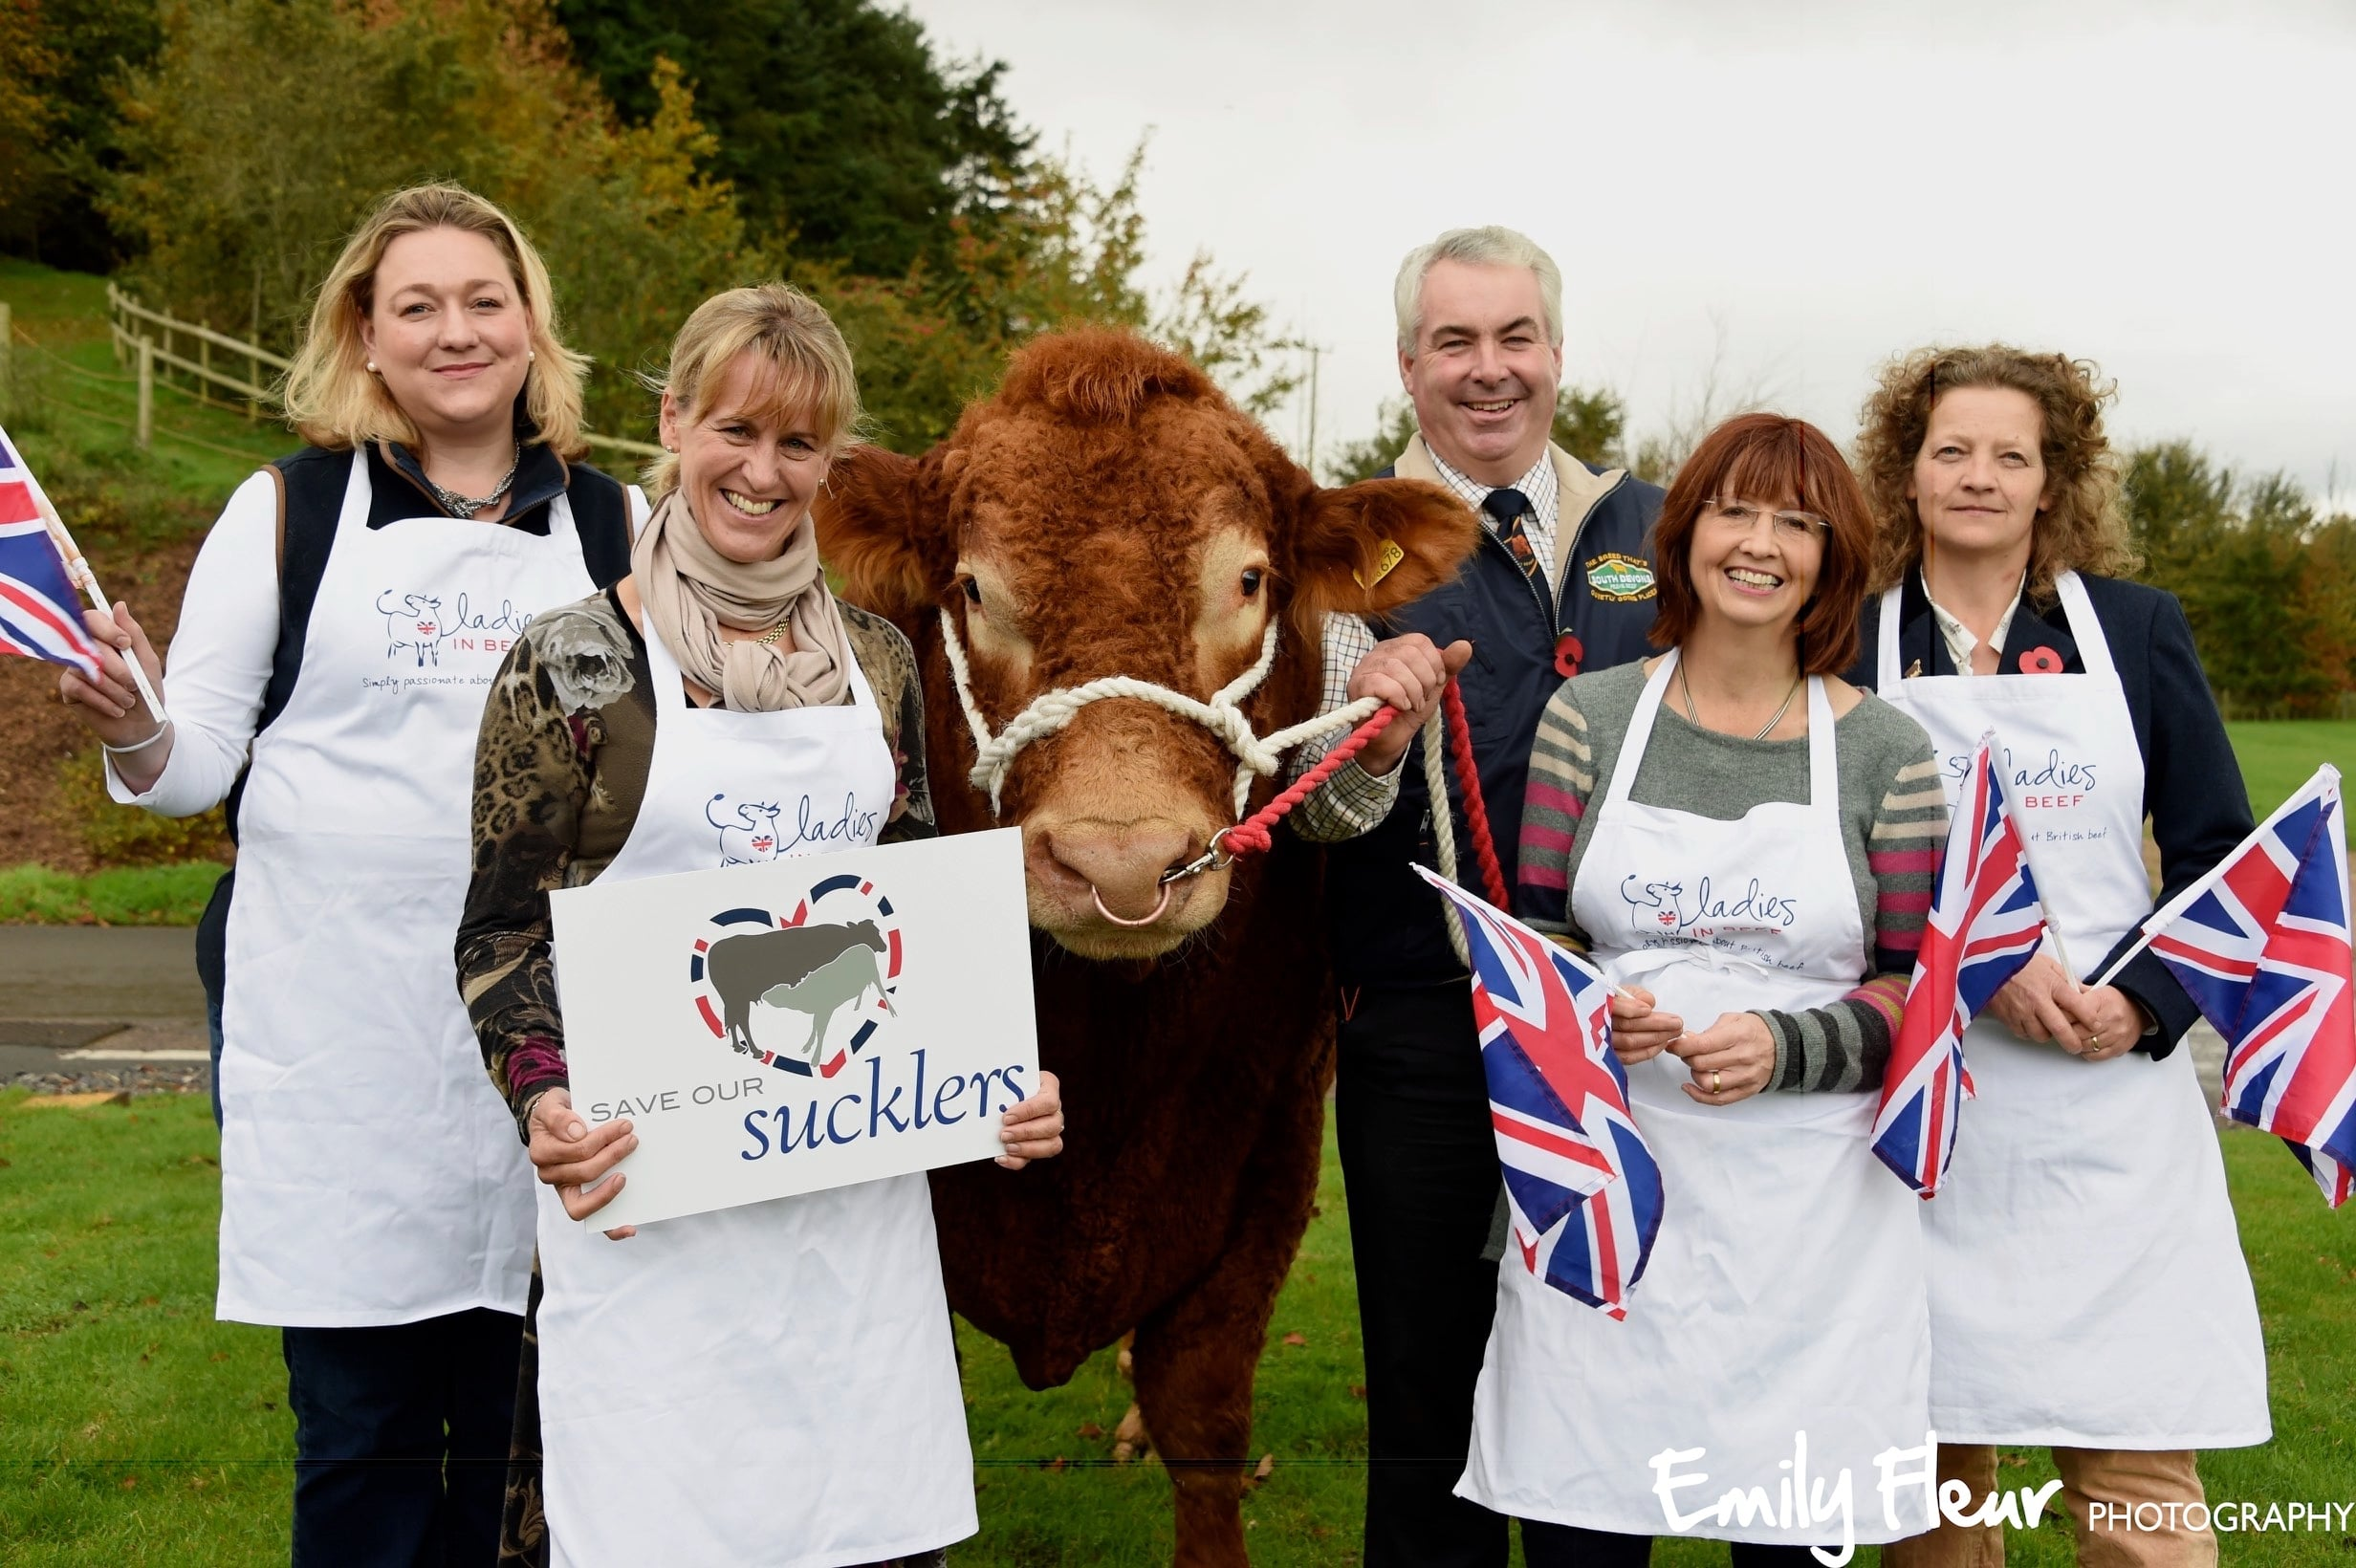 Left to right: Suzy Deeley, RABI, Minette Batters, LIB co-founder, David Thomas, South Devon breeder, Jilly Greed, LIB co-founder, Juliet Cleave, LIB member, Cornwall.